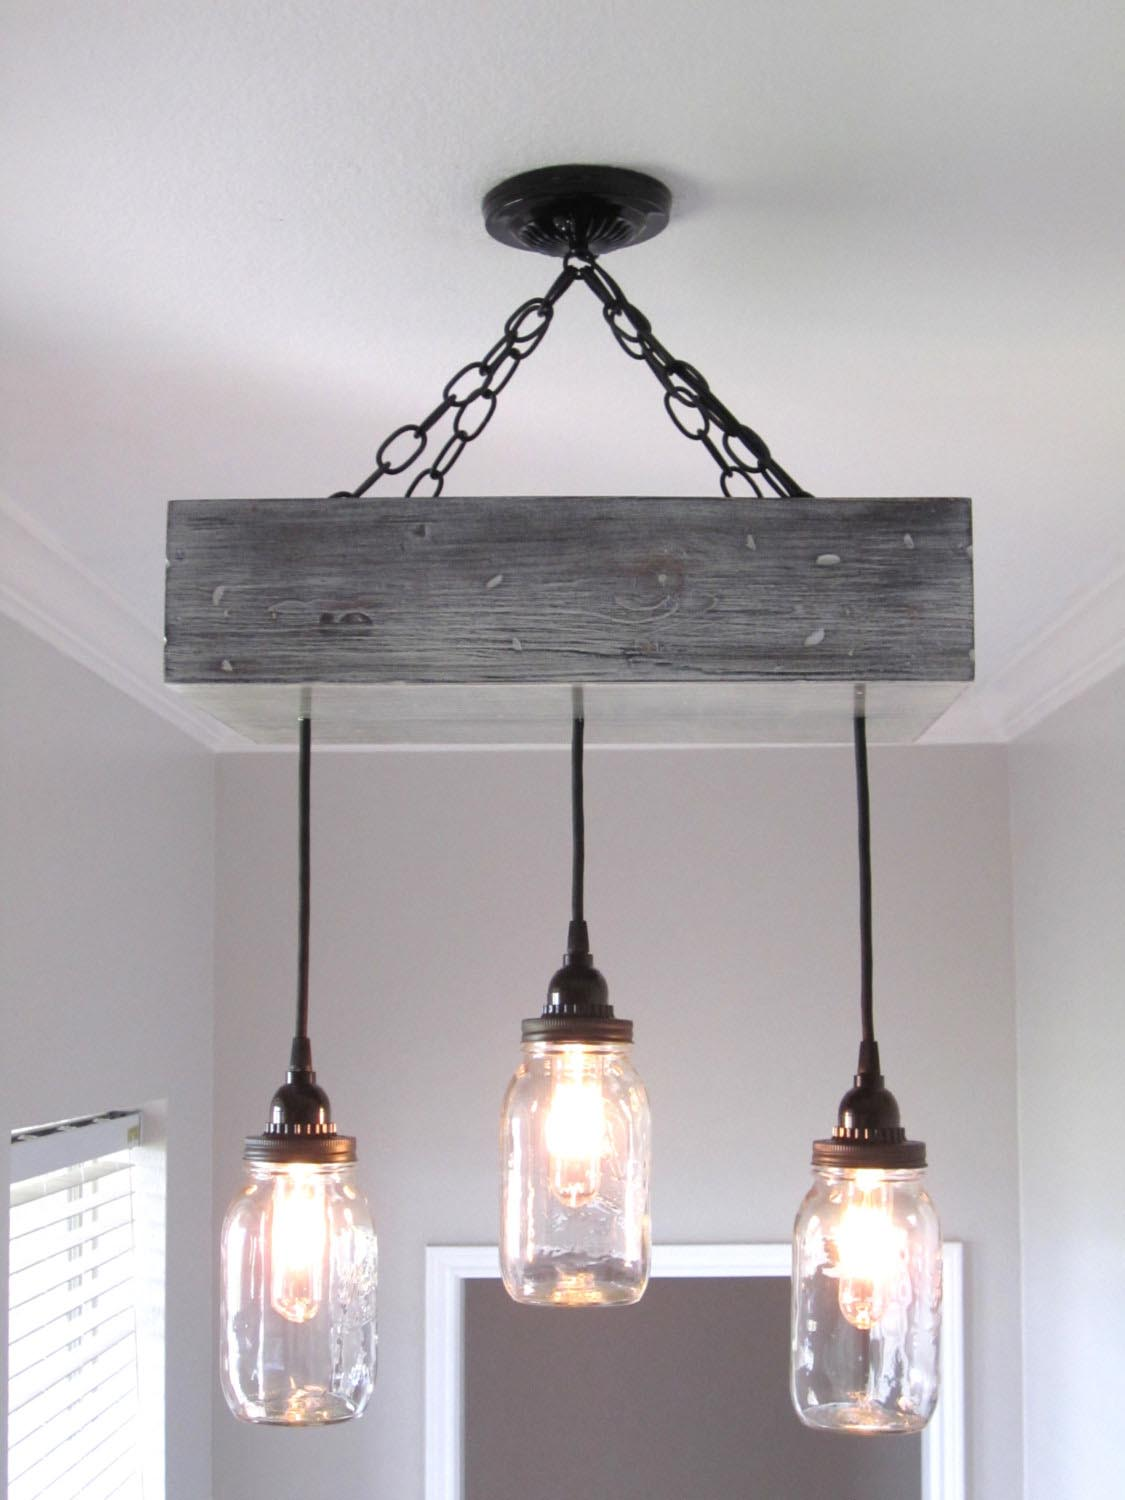 Farmhouse ceiling light fixtures light fixtures design ideas - Fabriquer un plafonnier ...